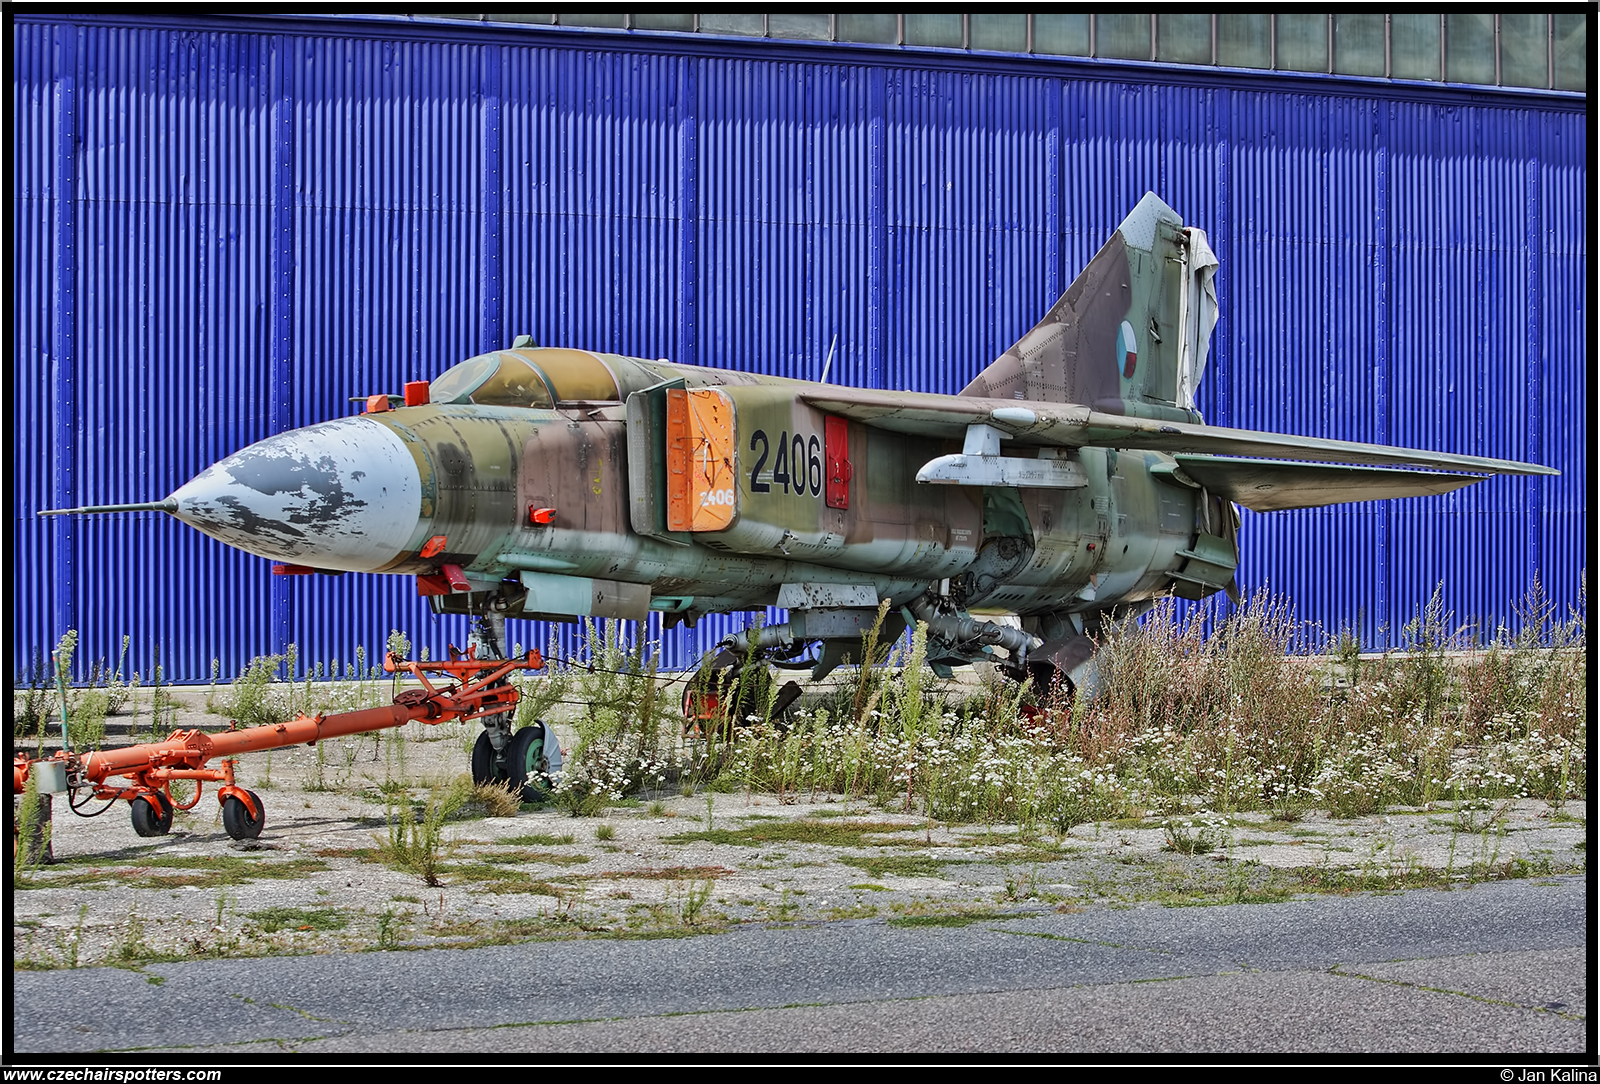 Czech - Air Force – Mikoyan-Gurevich MiG-23ML Flogger E 2406